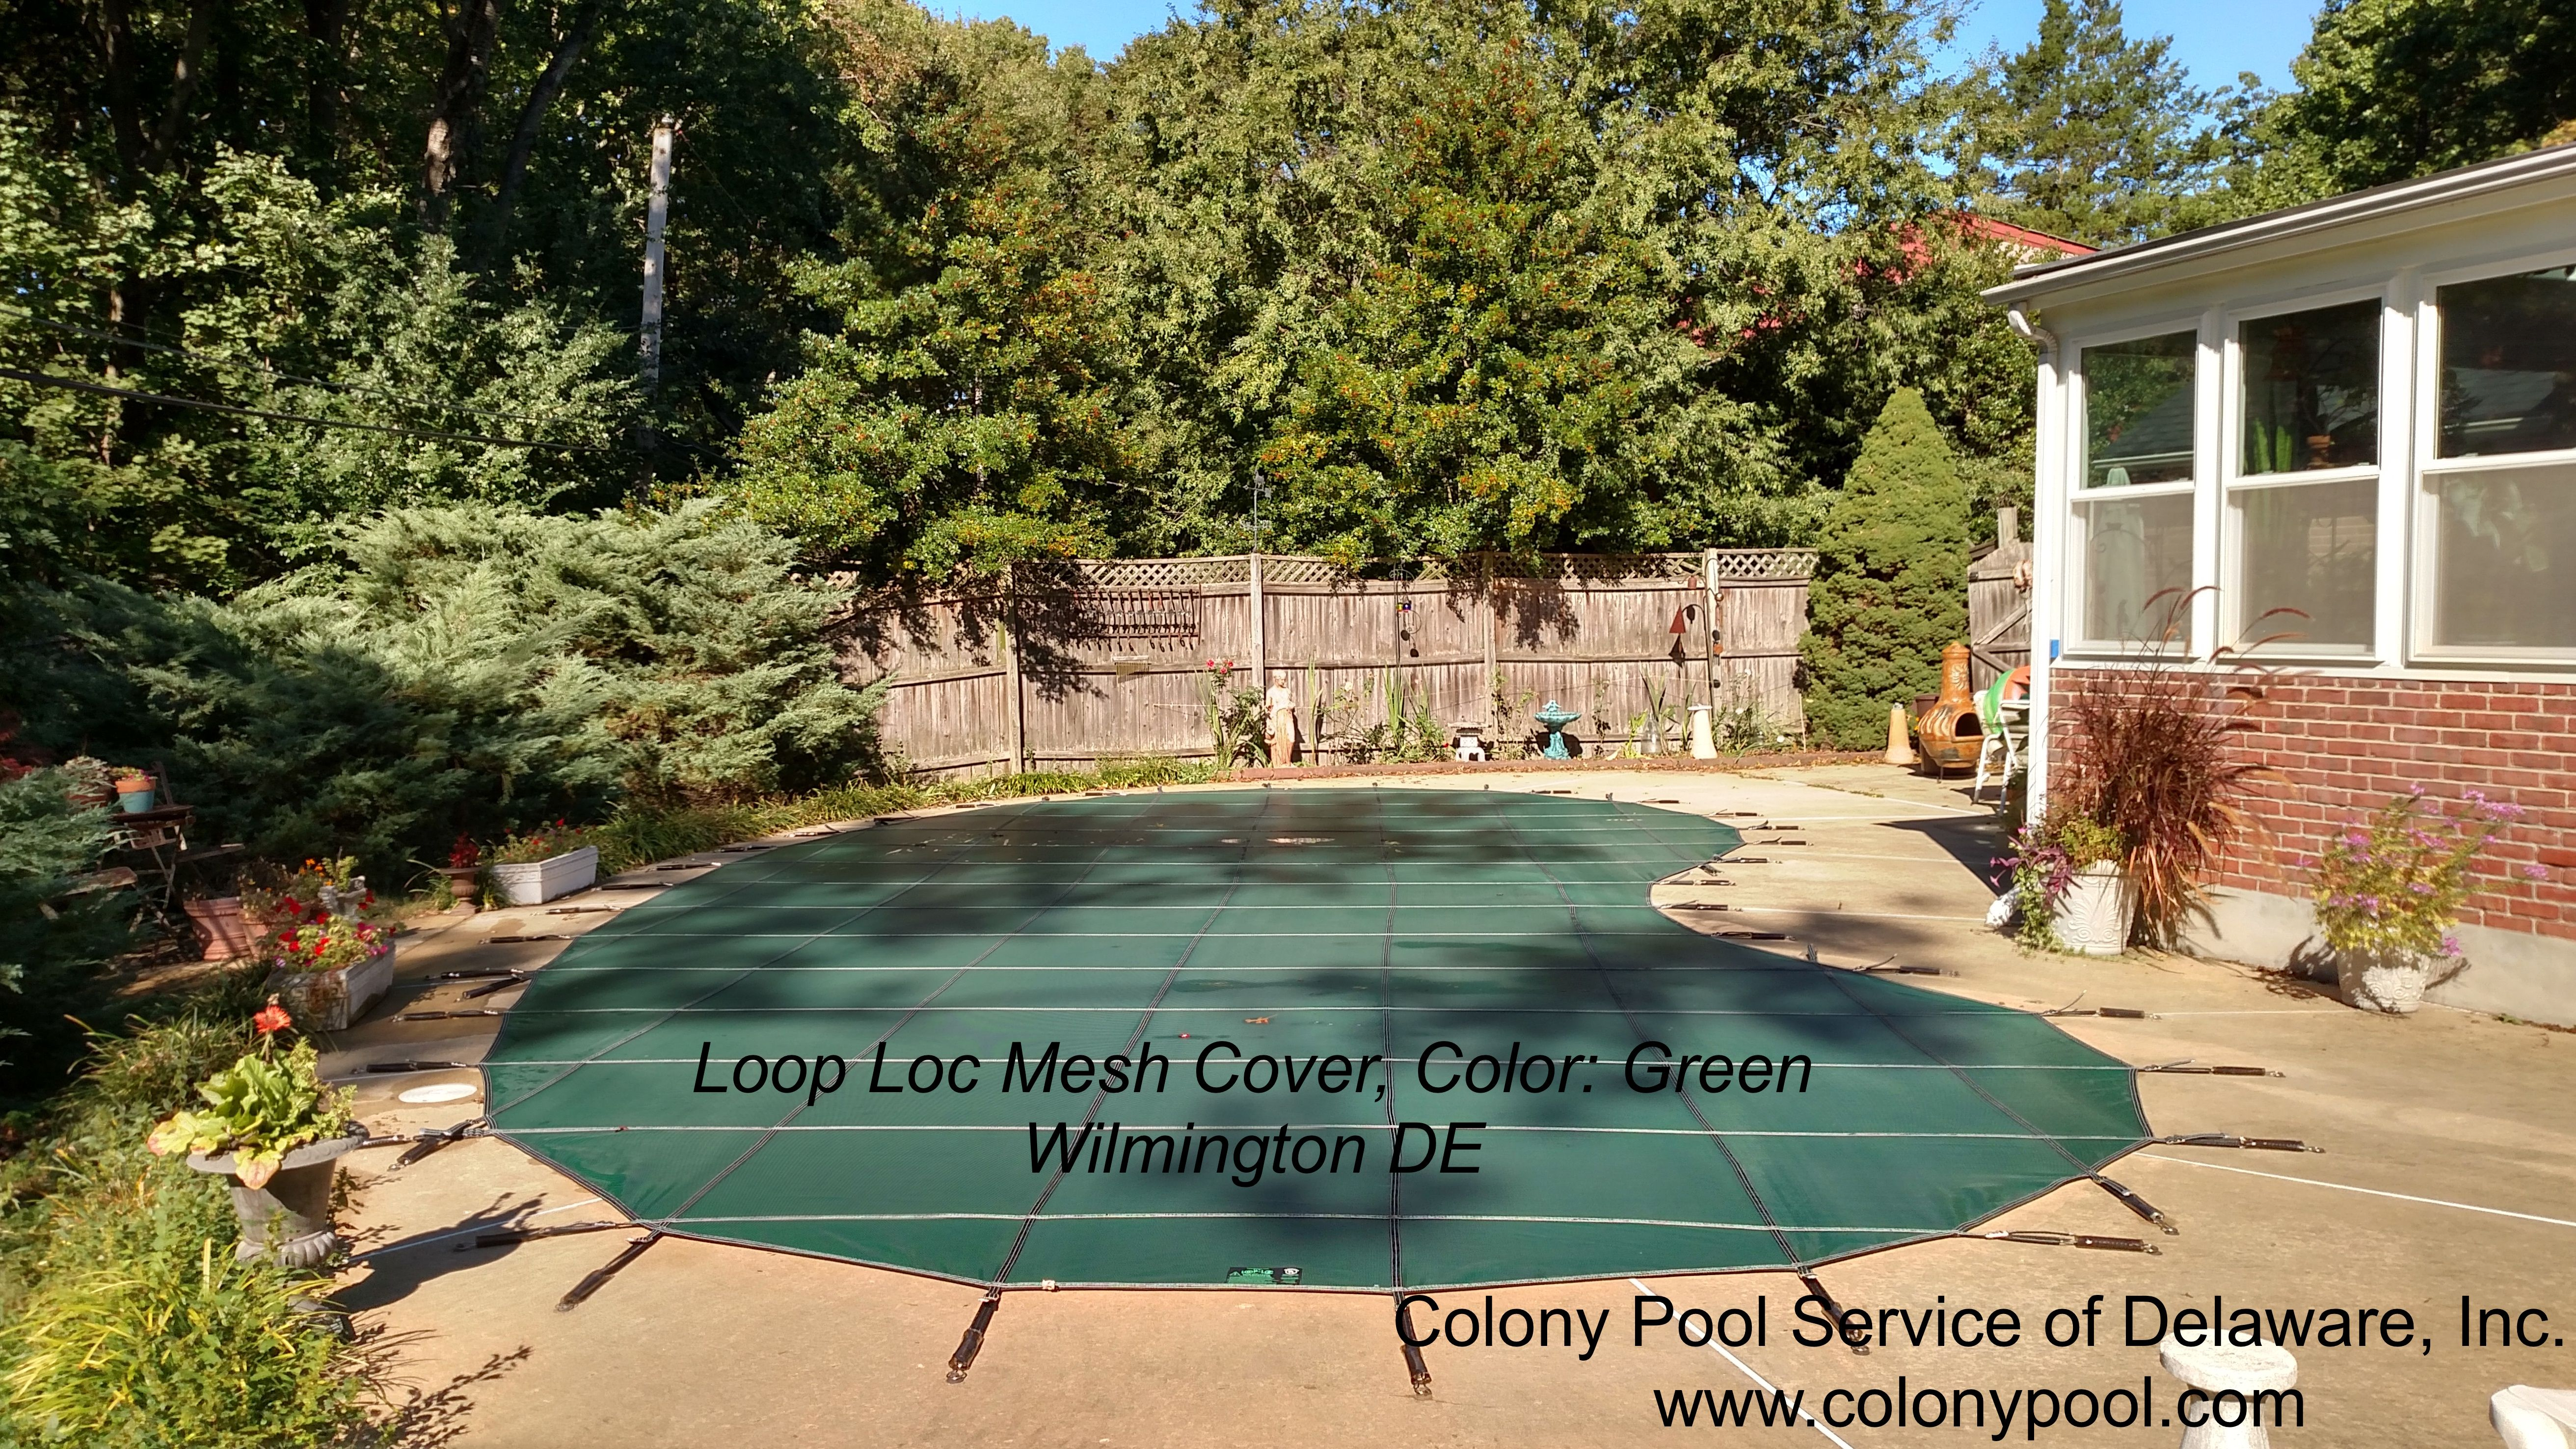 Colony Pool Service Installs A Mesh Loop Loc Safety Pool Cover In Green Location Wilmington Delaware Pool Pool Cover Custom Pools